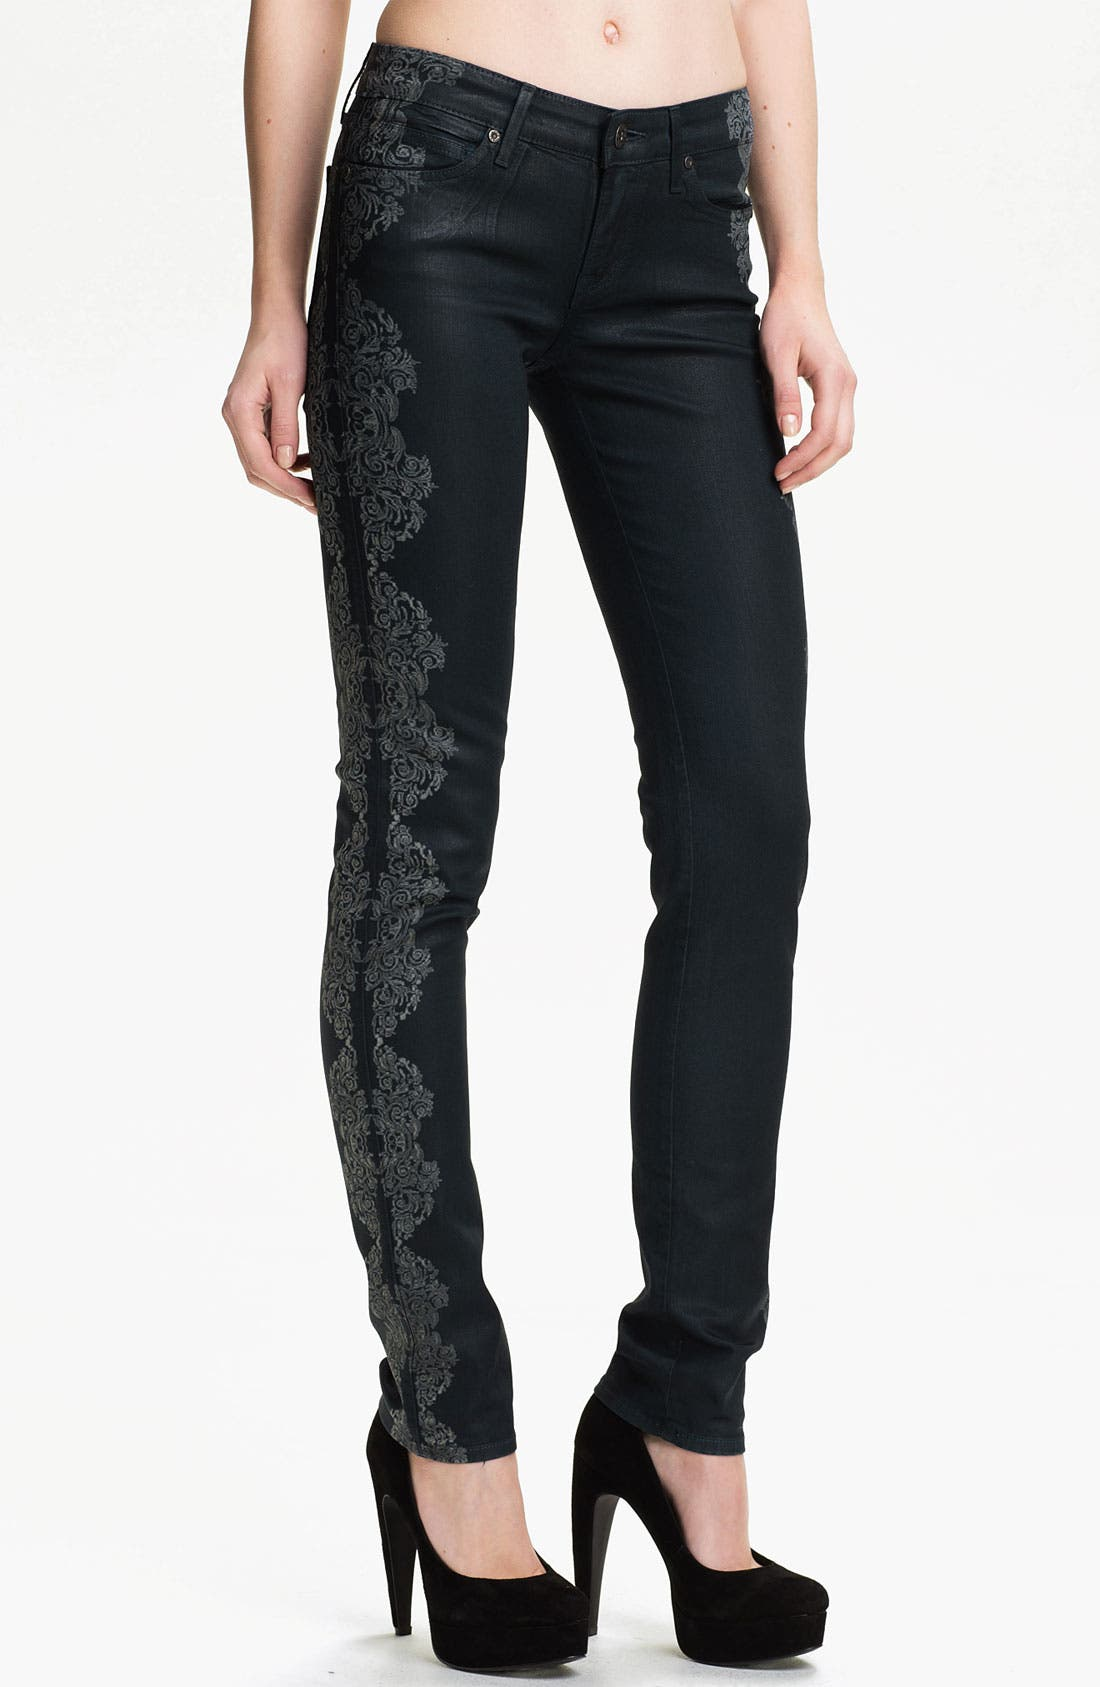 Alternate Image 1 Selected - Rich & Skinny 'Legacy' Coated Skinny Jeans (Temperance)